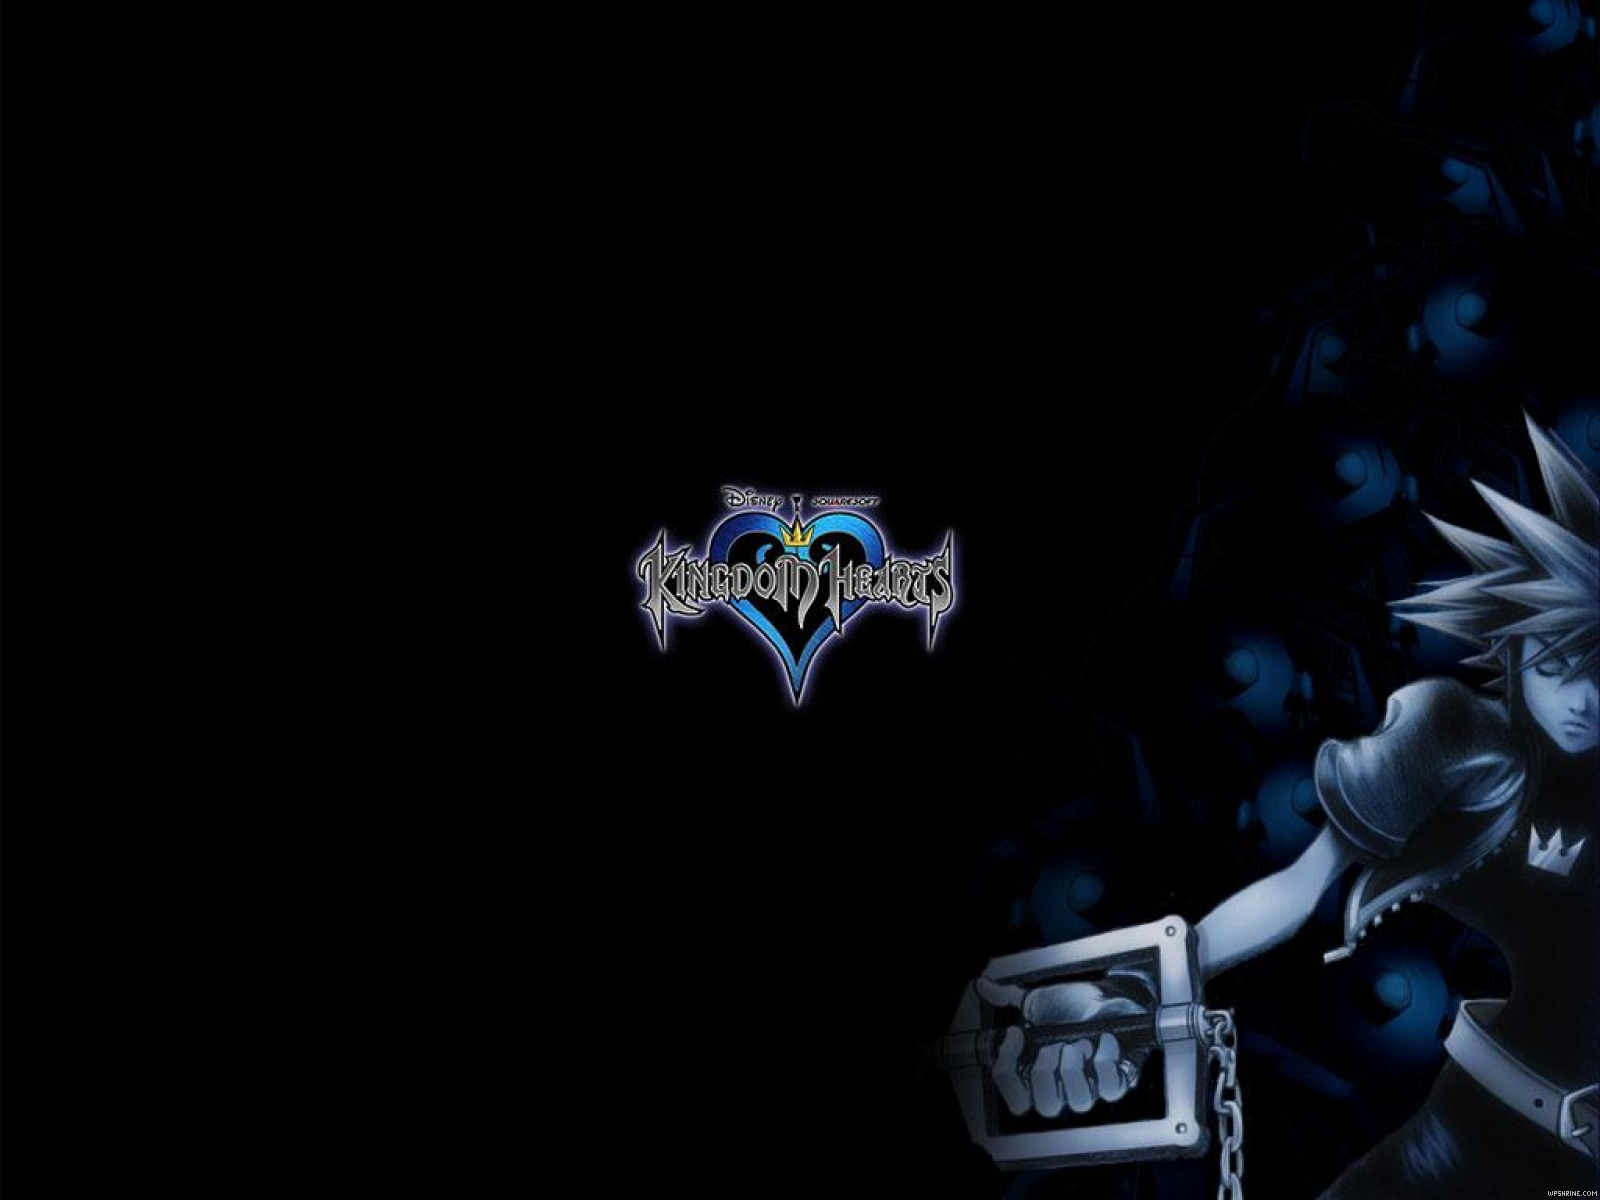 Kingdom Hearts Hd Wallpaper: Pics for Gt Kingdom Hearts Heartless Wallpaper Hd 1600x1200px